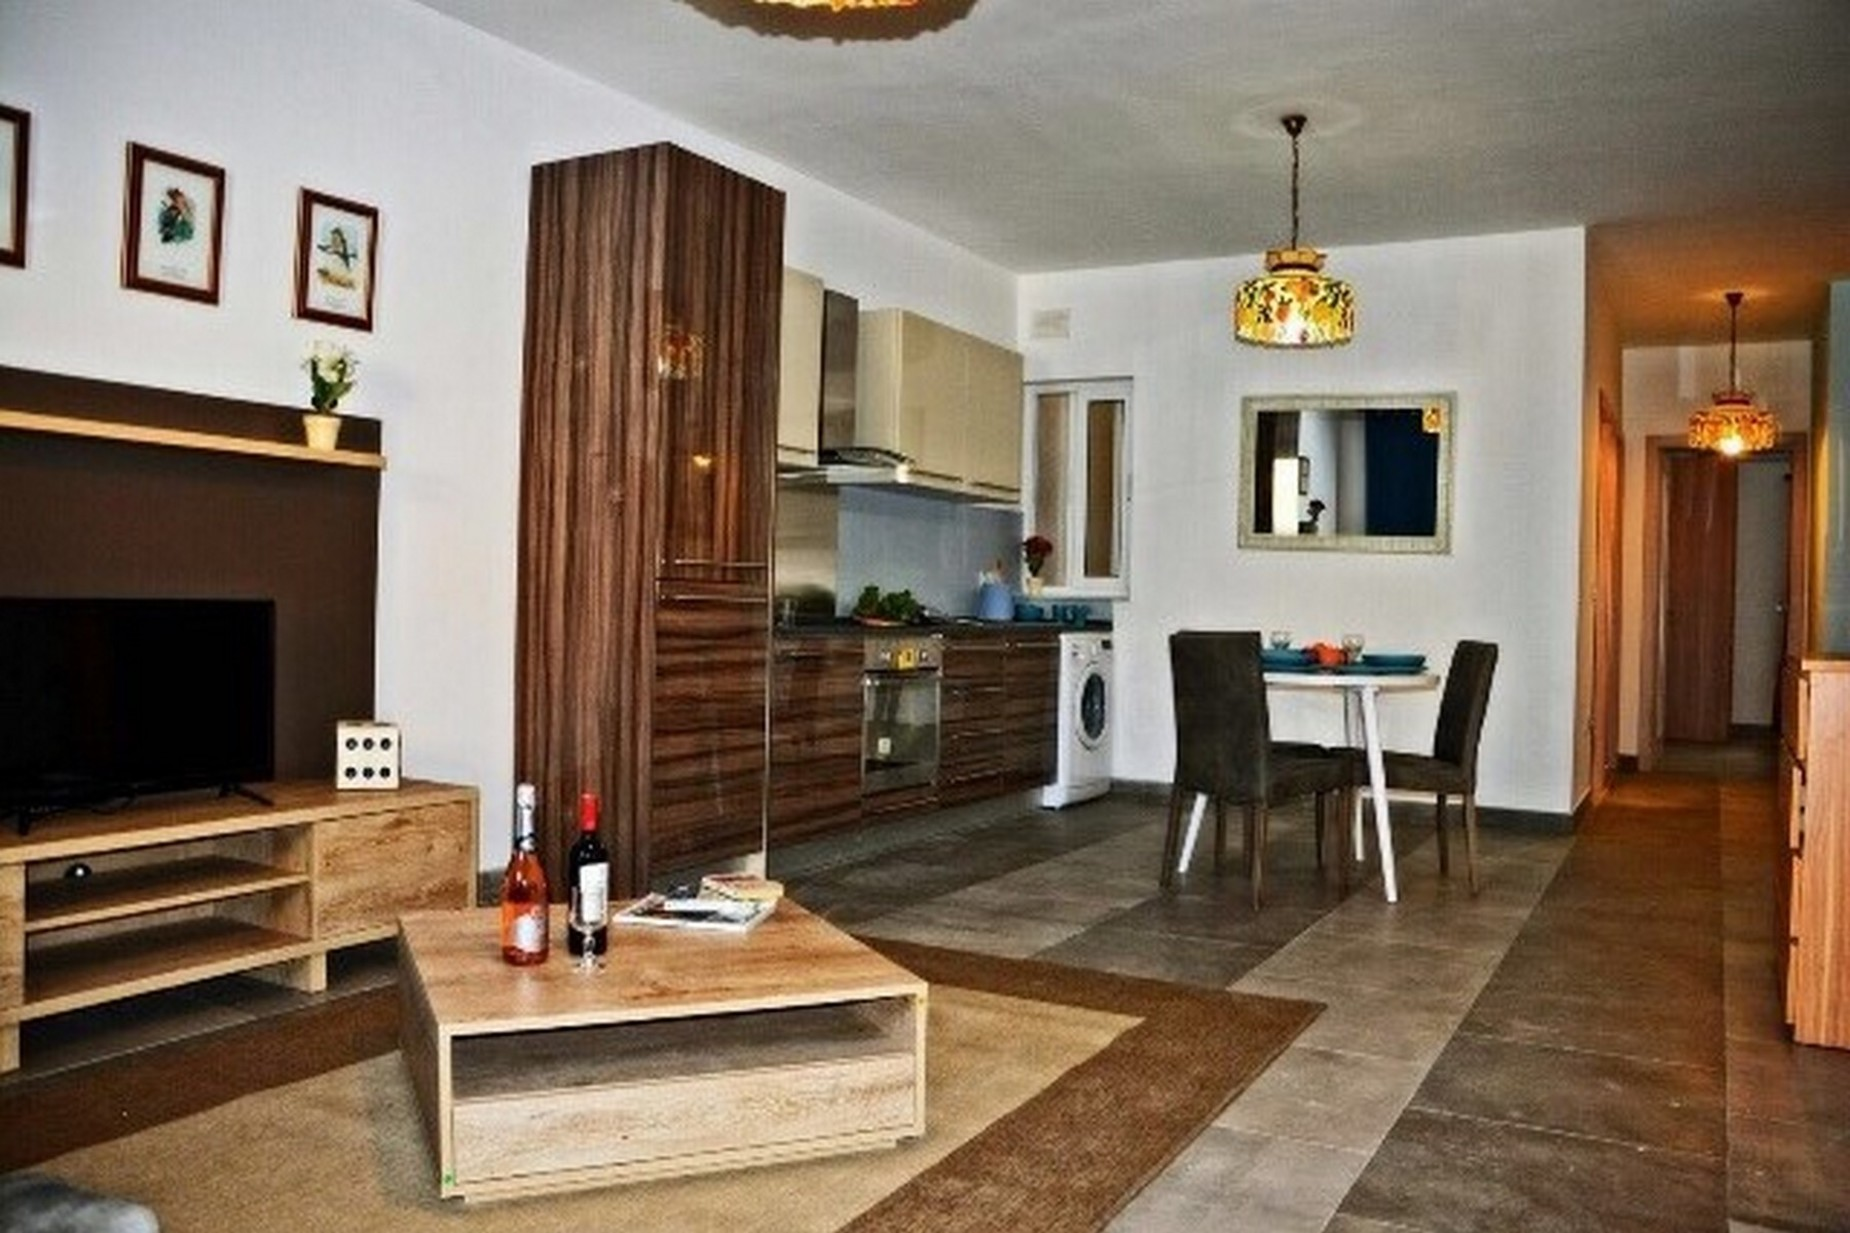 2 bed Apartment For Rent in Swieqi, Swieqi - thumb 4